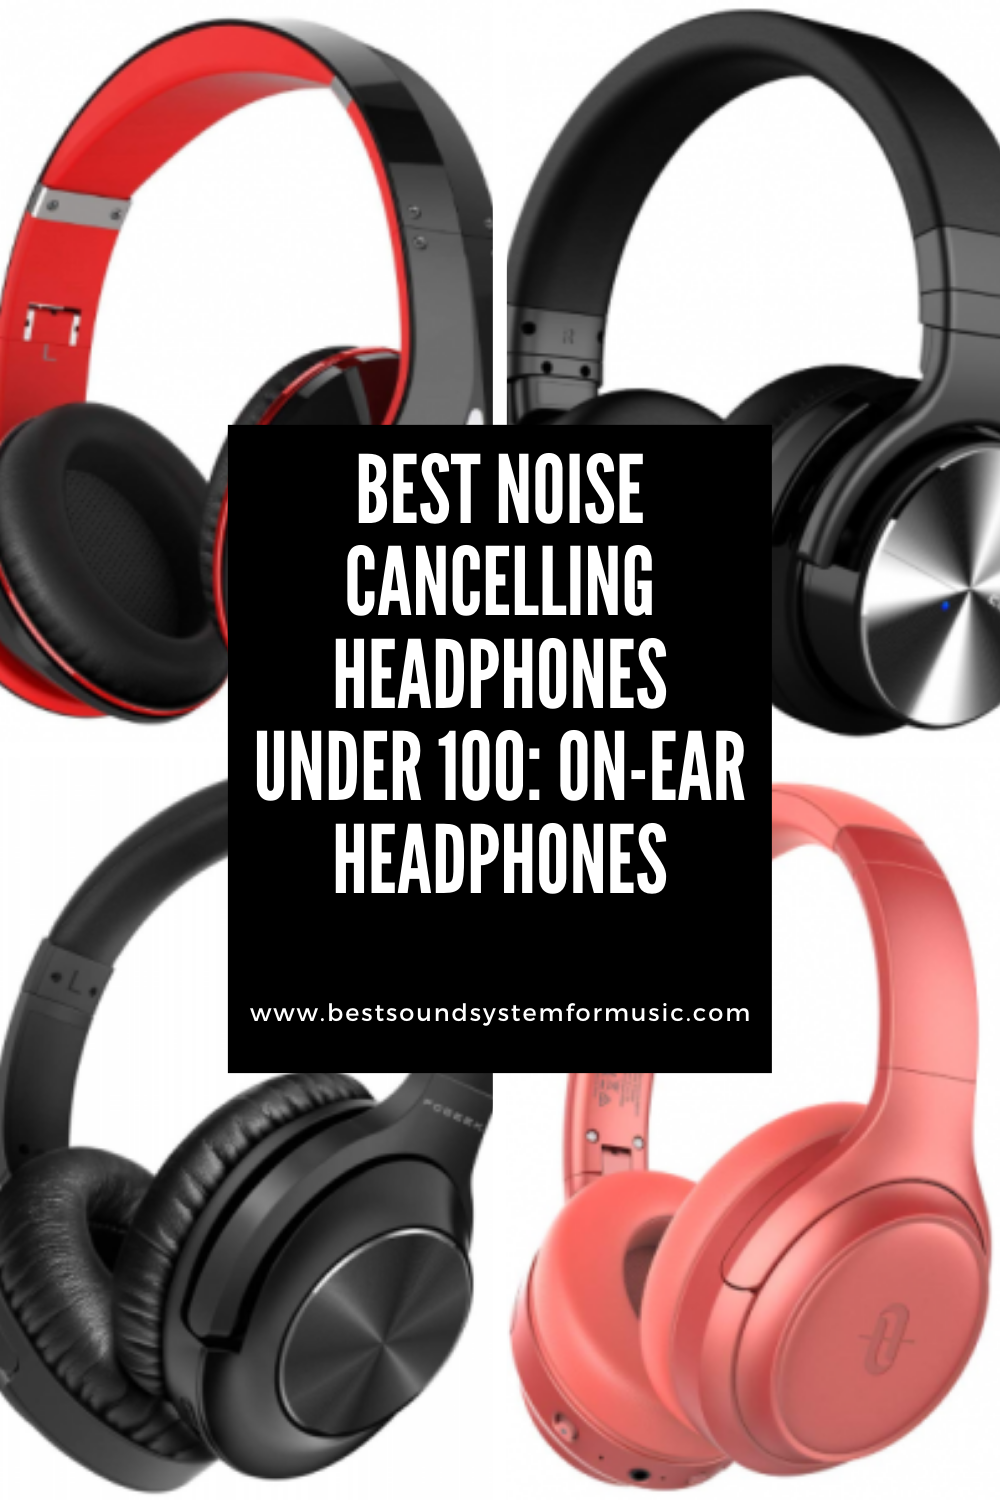 Best Noise Cancelling Headphones Under 100: On-Ear Headphones